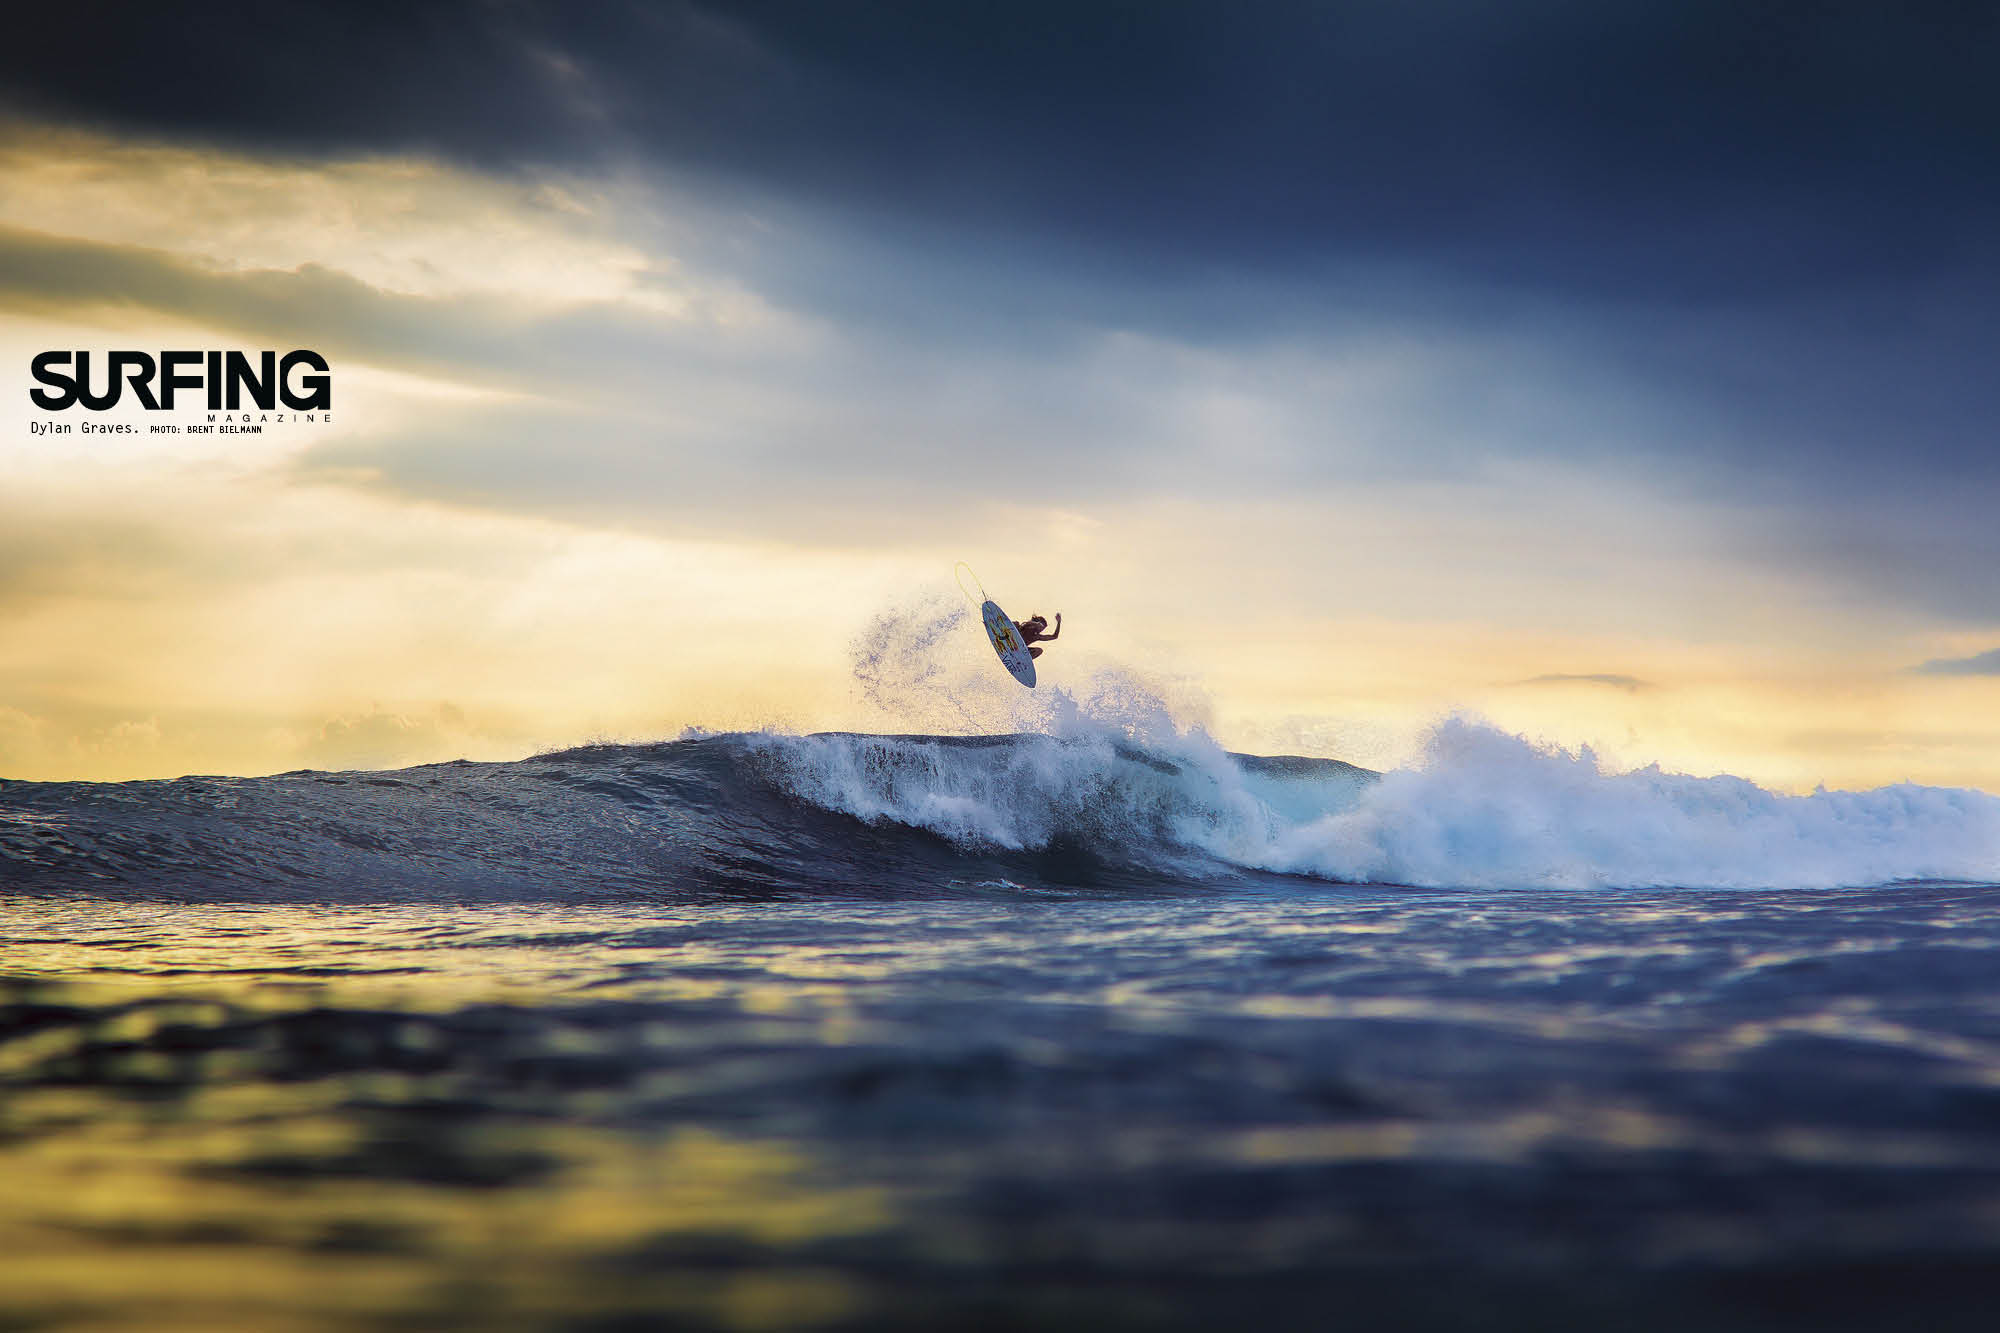 50] Surfing Magazine Wallpapers on WallpaperSafari 2000x1333